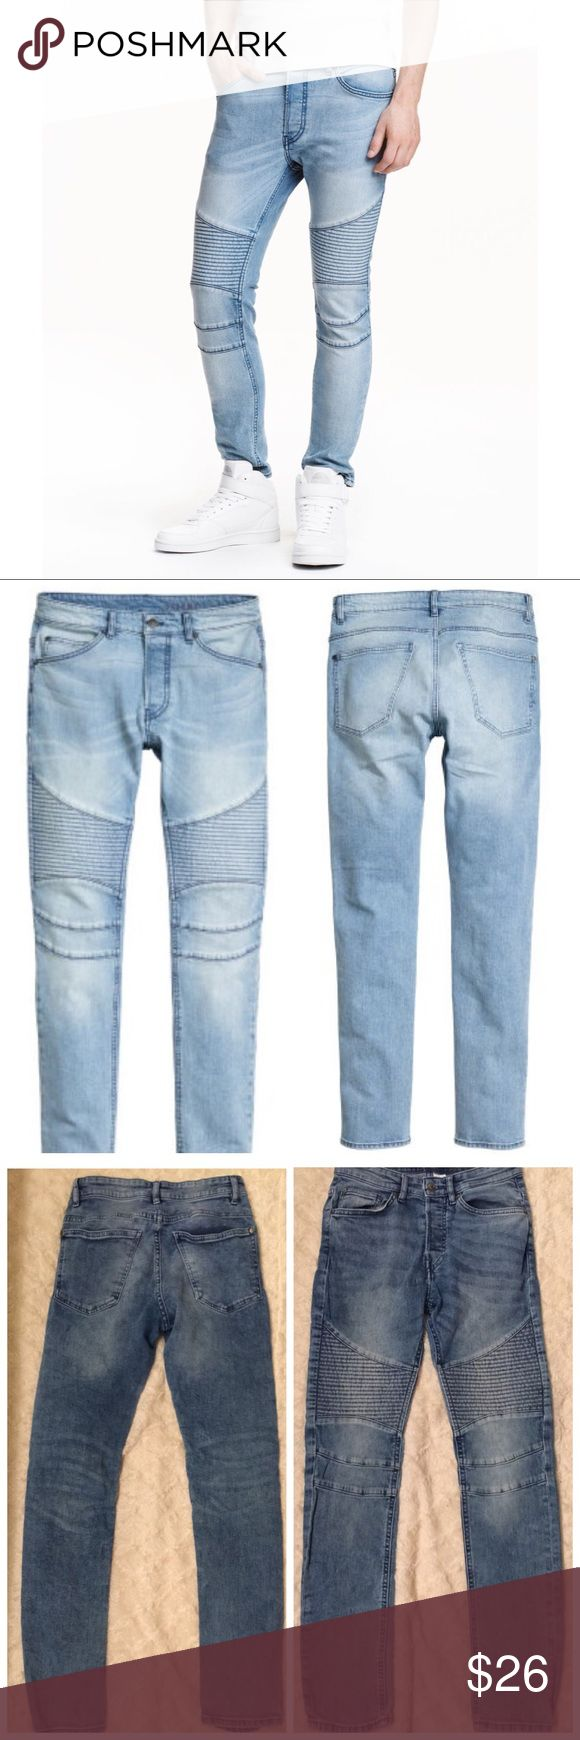 Mens Slim Fit Joggers Divided by H&M skinny jogger jeans. Light wash denim with button closure. Skinny leg. Like new condition. Pair with some  vans or jordans. Ribbed biker style.  Similar to Levi's, American Apparel, true religion, vans, skater, abercrombie, hollister, express etc H&M Jeans